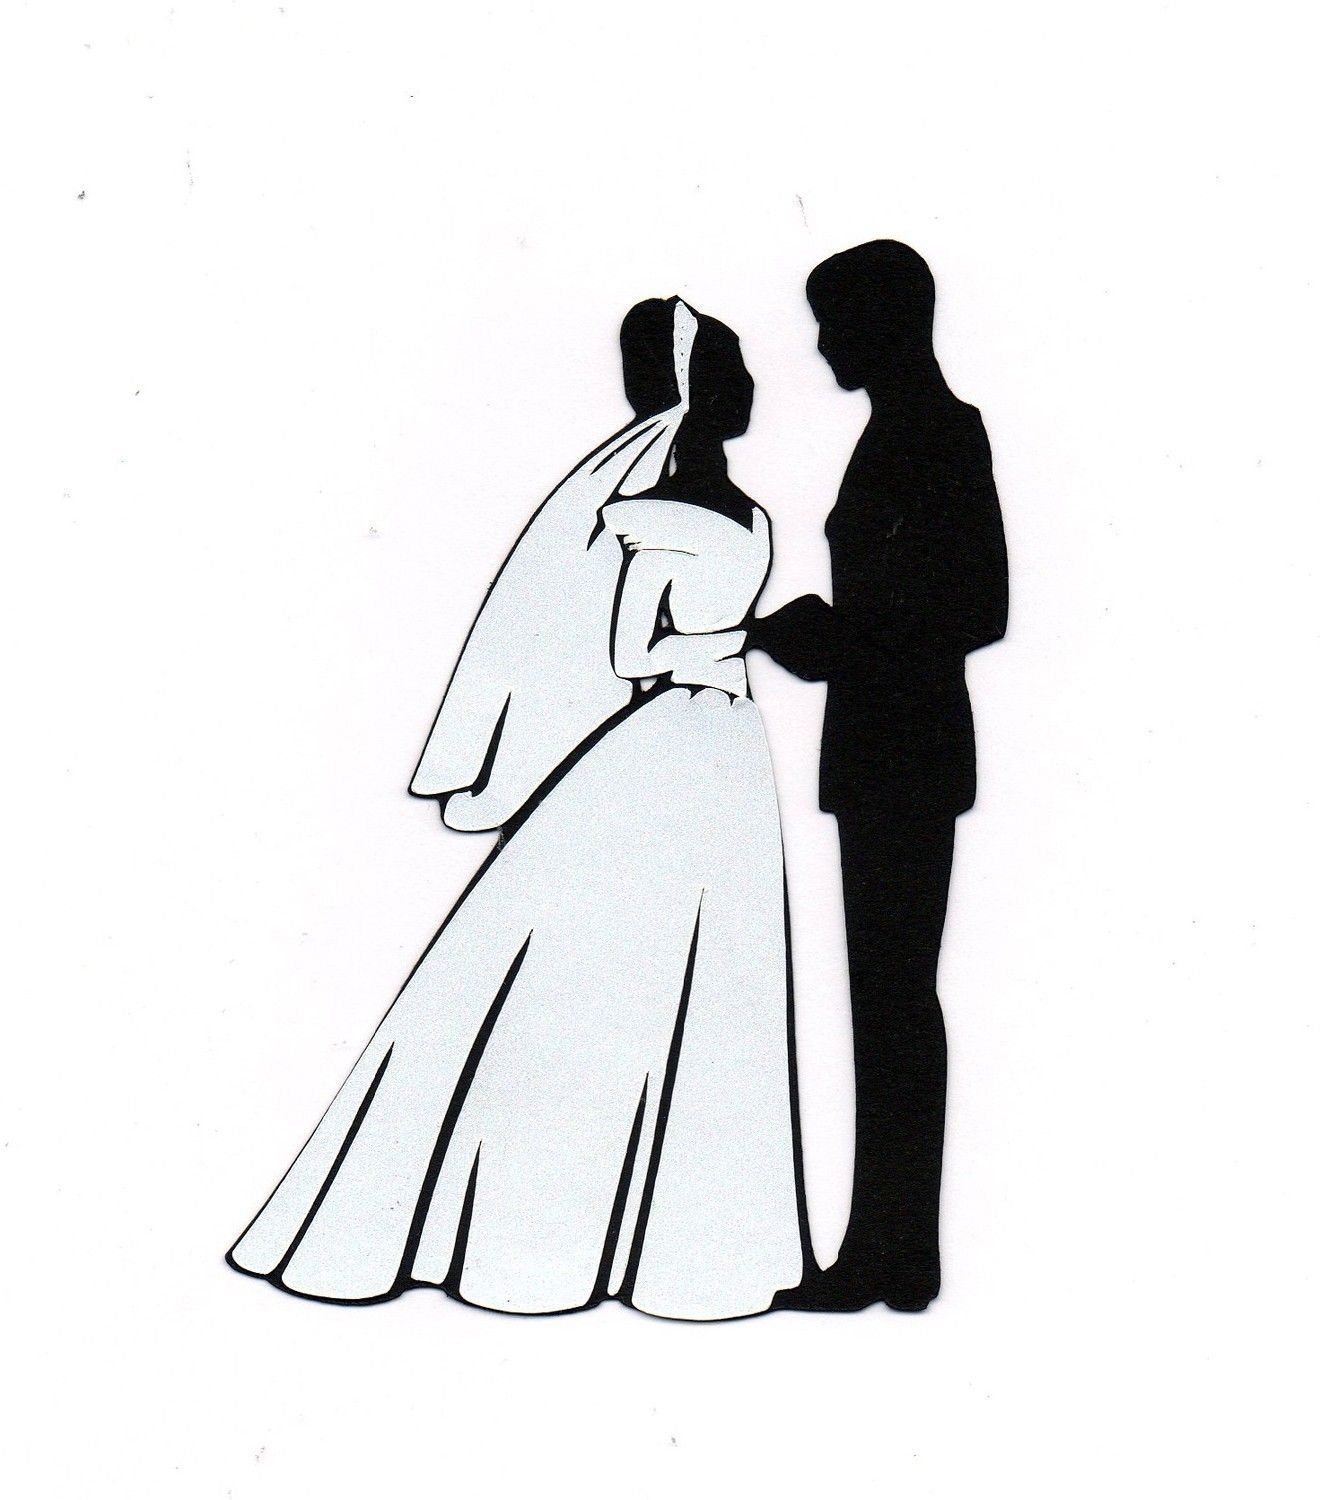 silhouette bride and groom at getdrawings com free for personal rh getdrawings com Hands Bride and Groom Silhouette Bride and Groom Silhouette Graphic